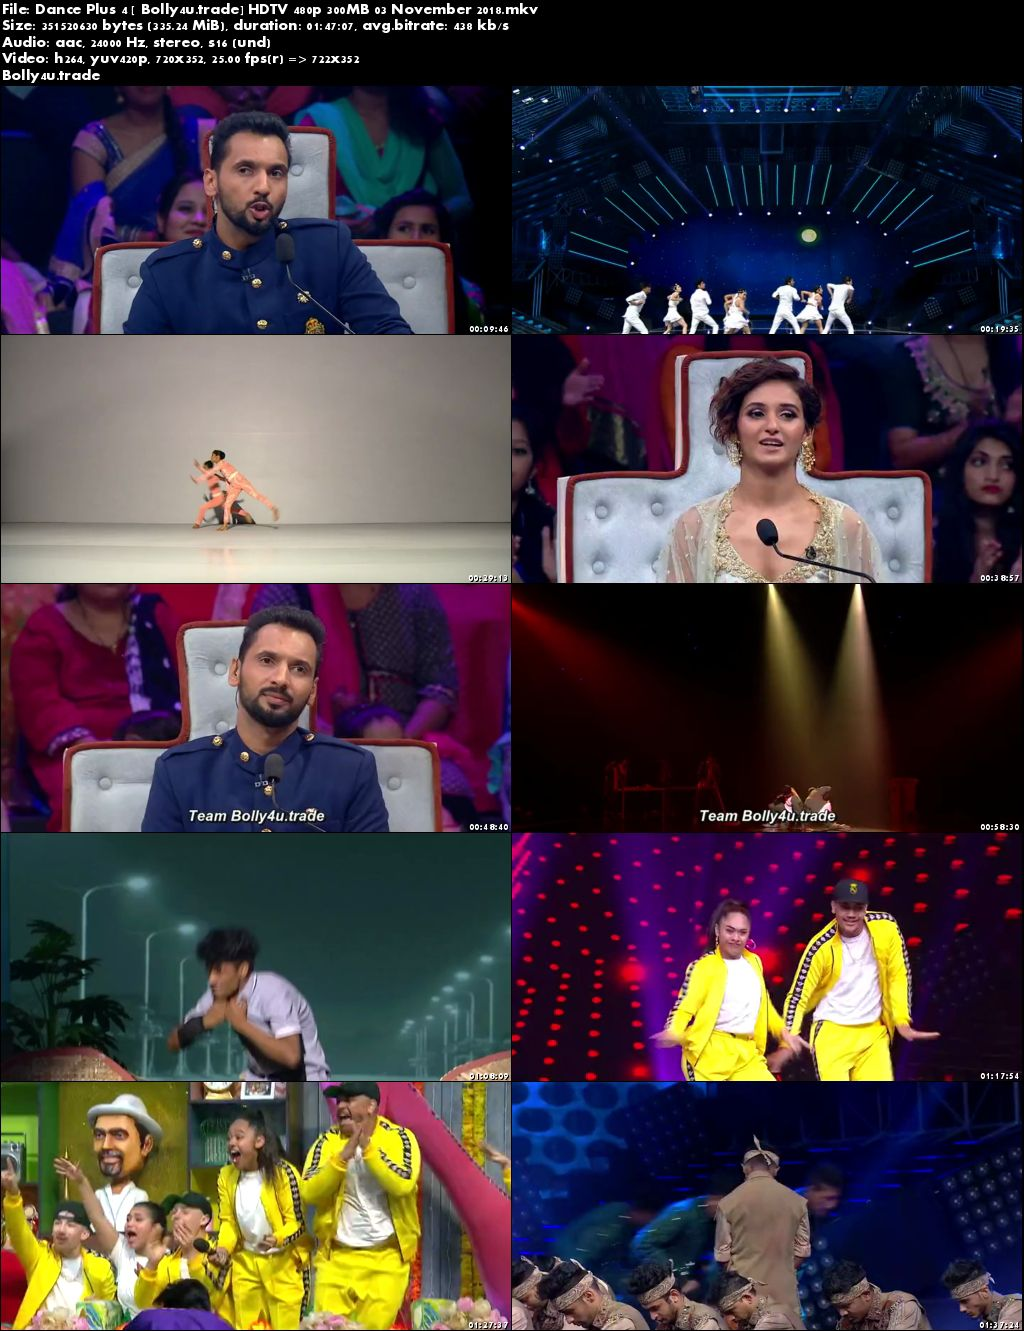 Dance Plus Season 4 HDTV 480p 300MB 03 November 2018 Download